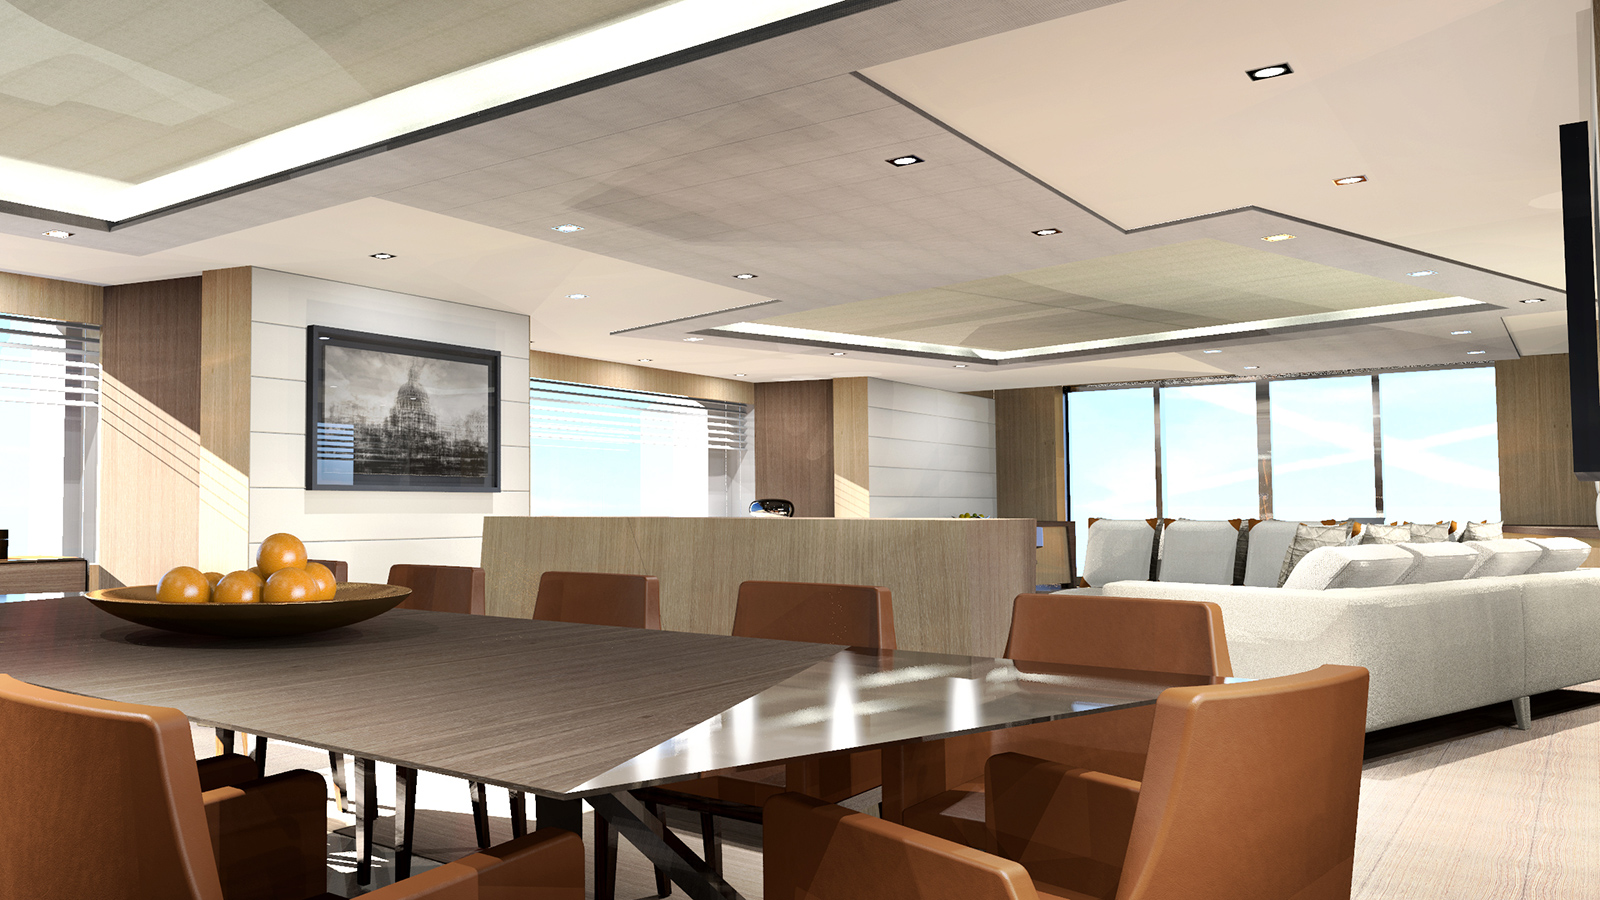 the-lounge-of-the-benetti-fb276-super-yacht-project-balance